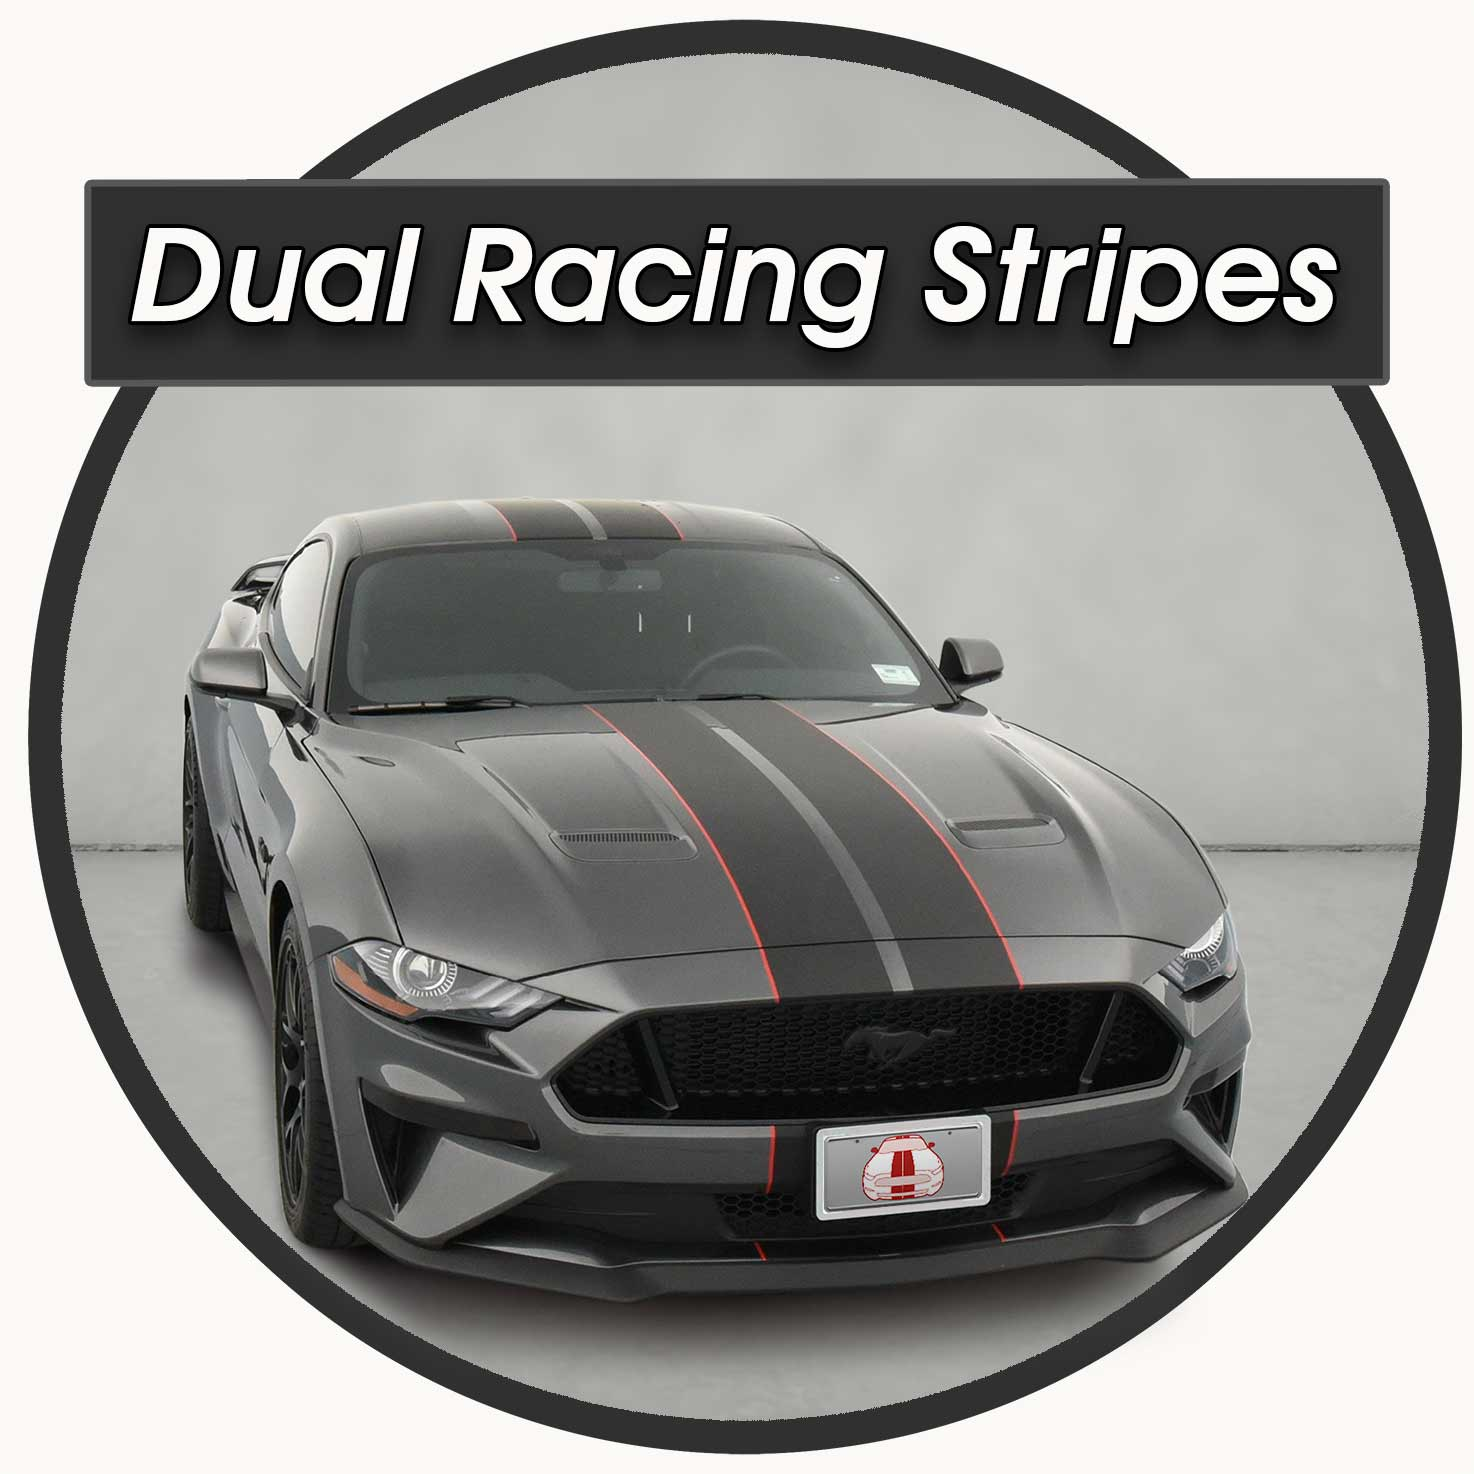 Matte Black with red pinstriping Dual Racing Stripes for sale for a Ford Mustang 2018-2021